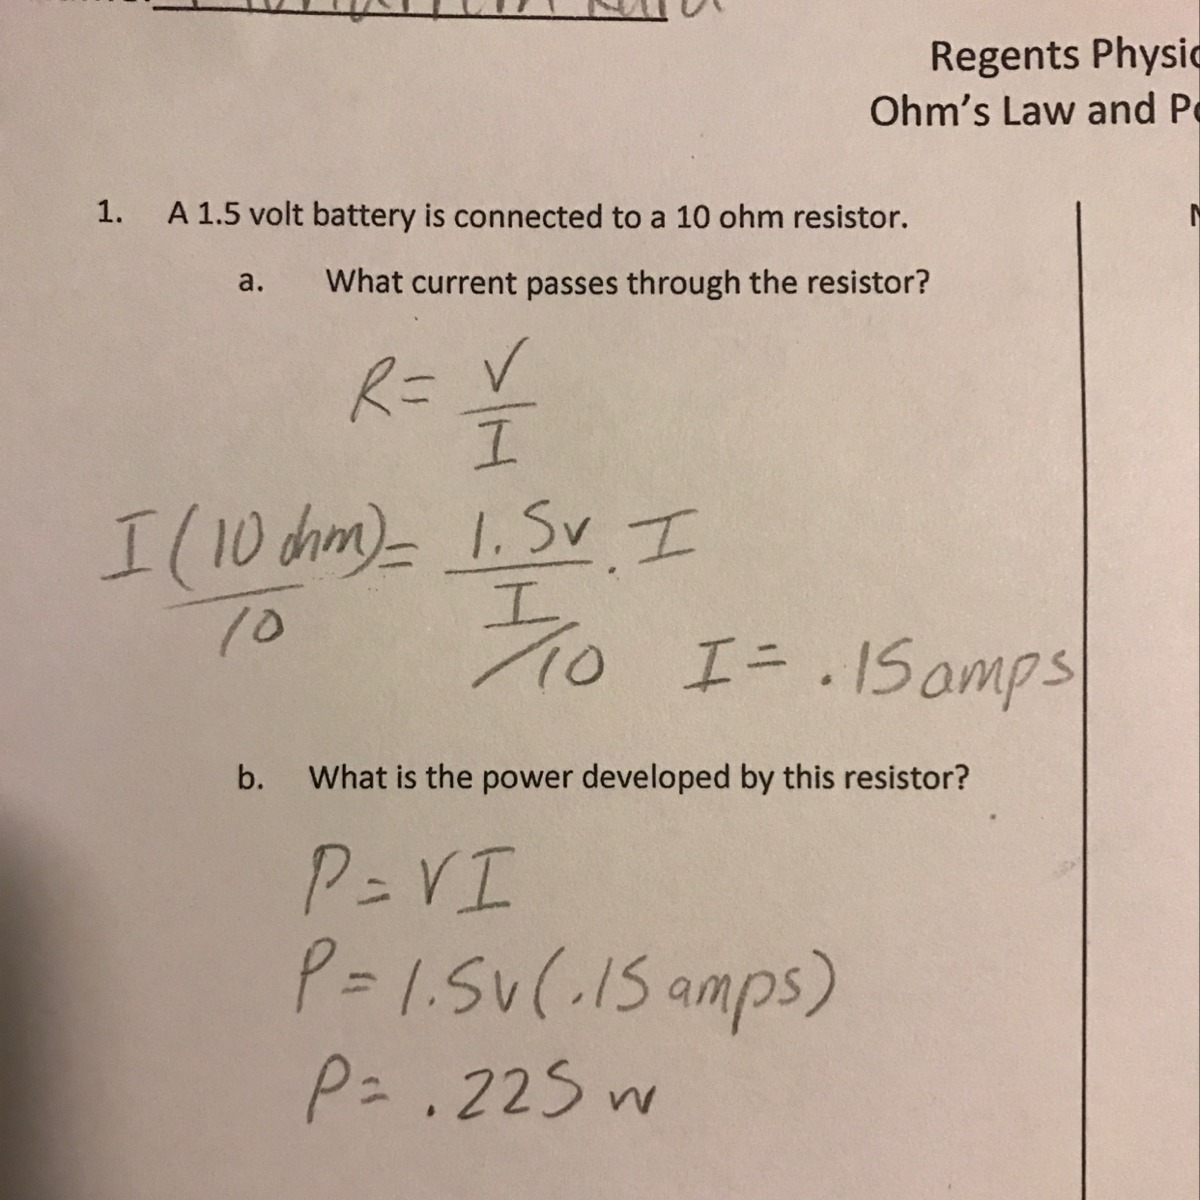 Can someone help me on question 1?